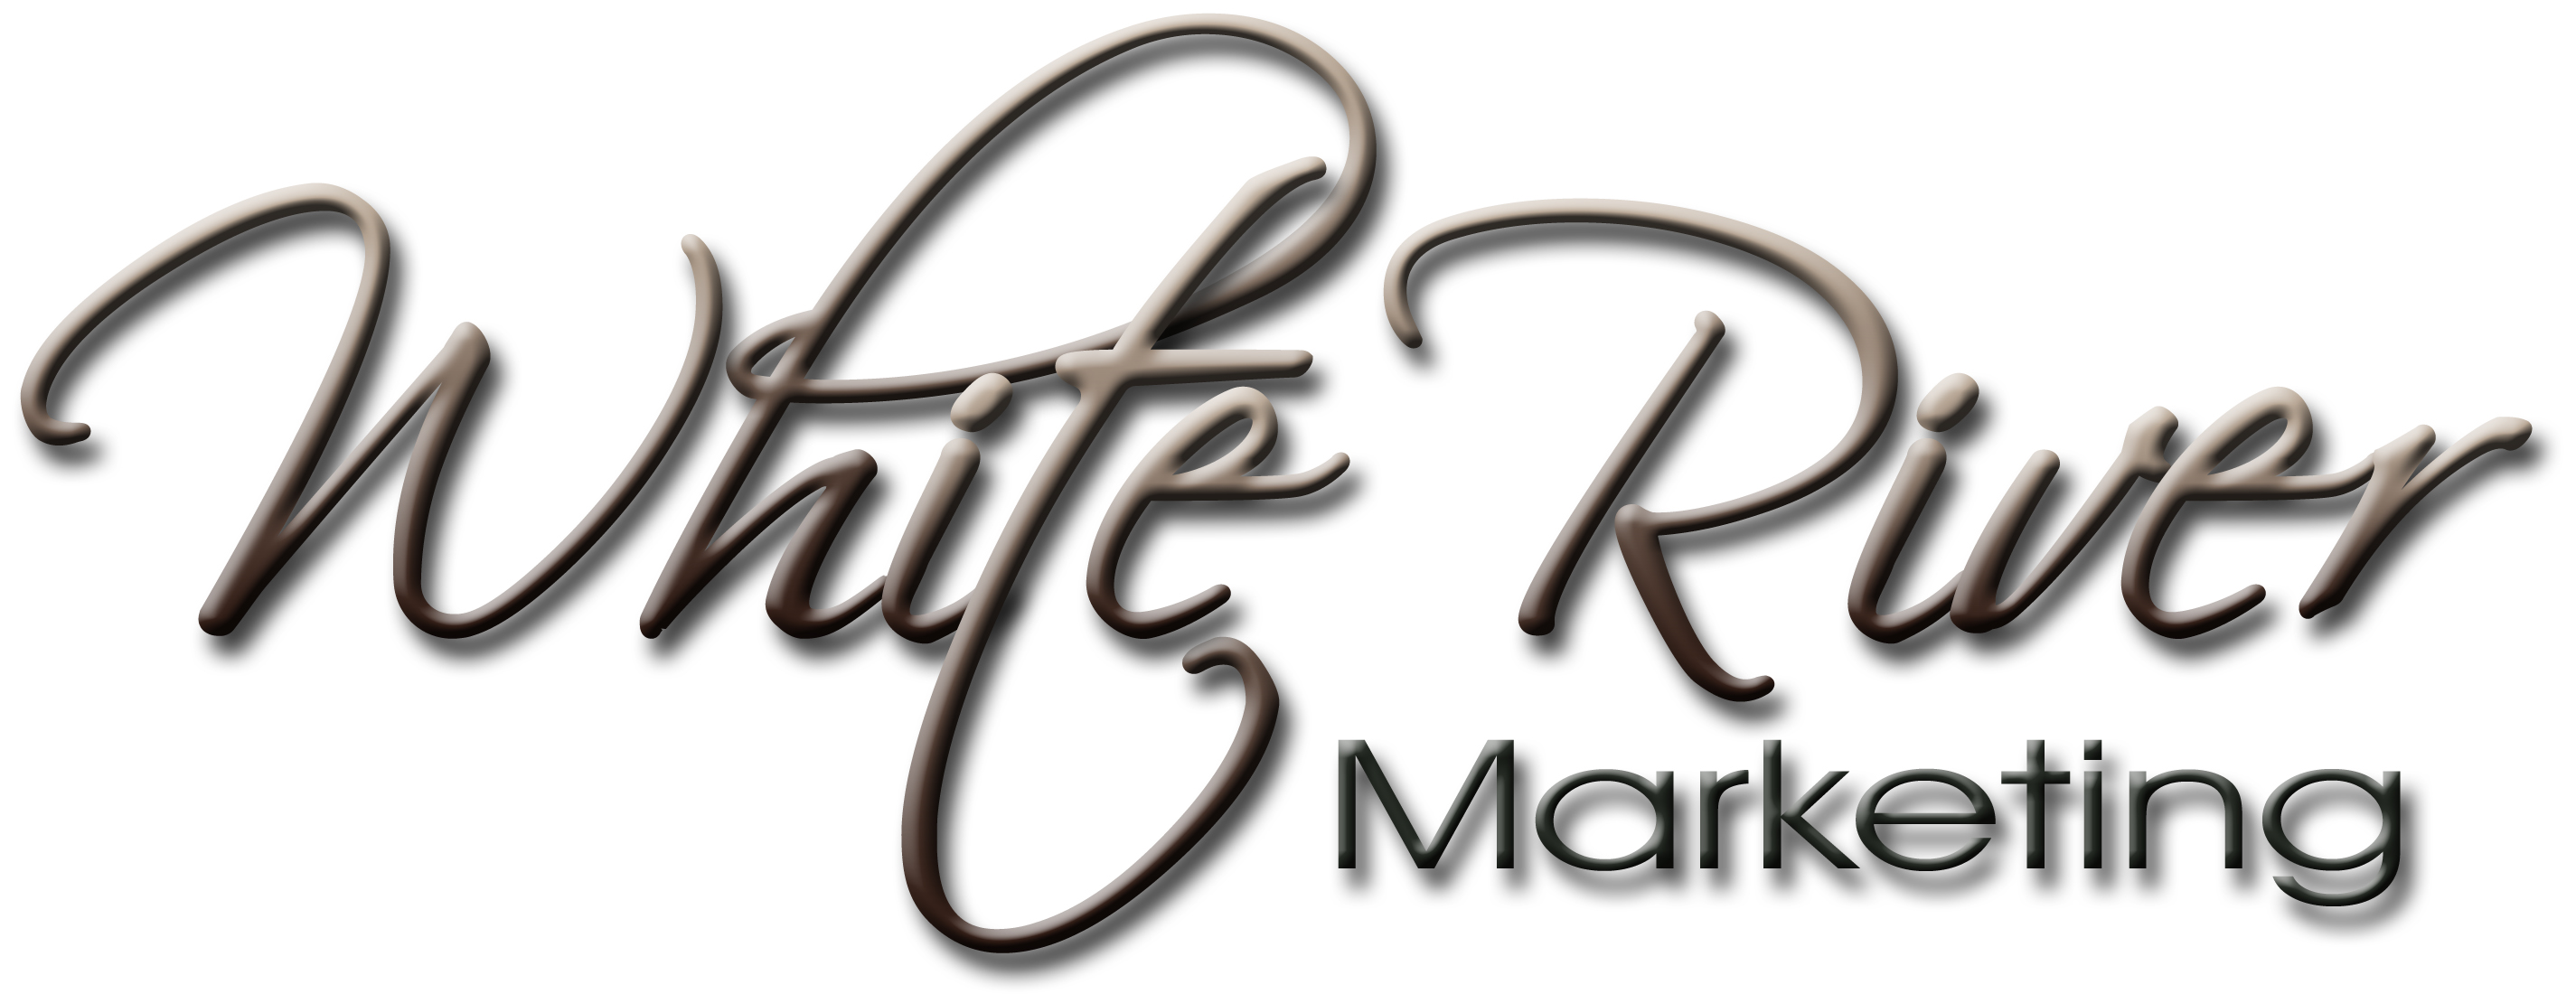 White River Marketing, Inc.